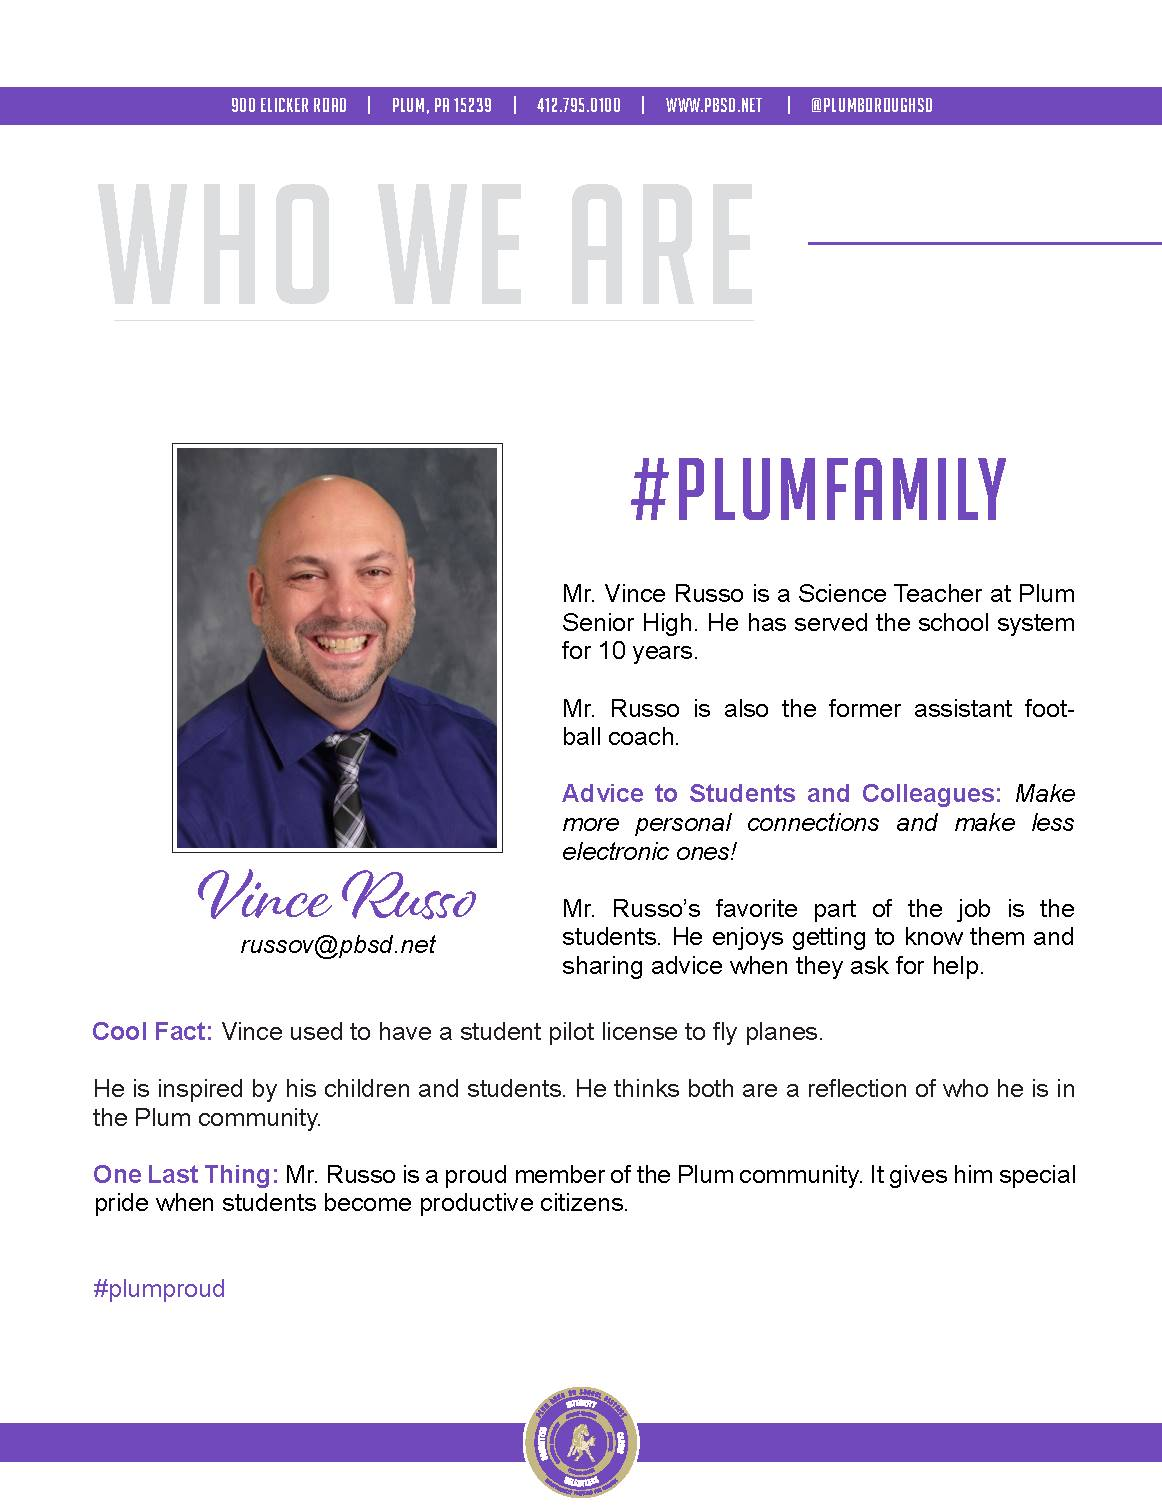 Who We Are Wednesday features Vince Russo.